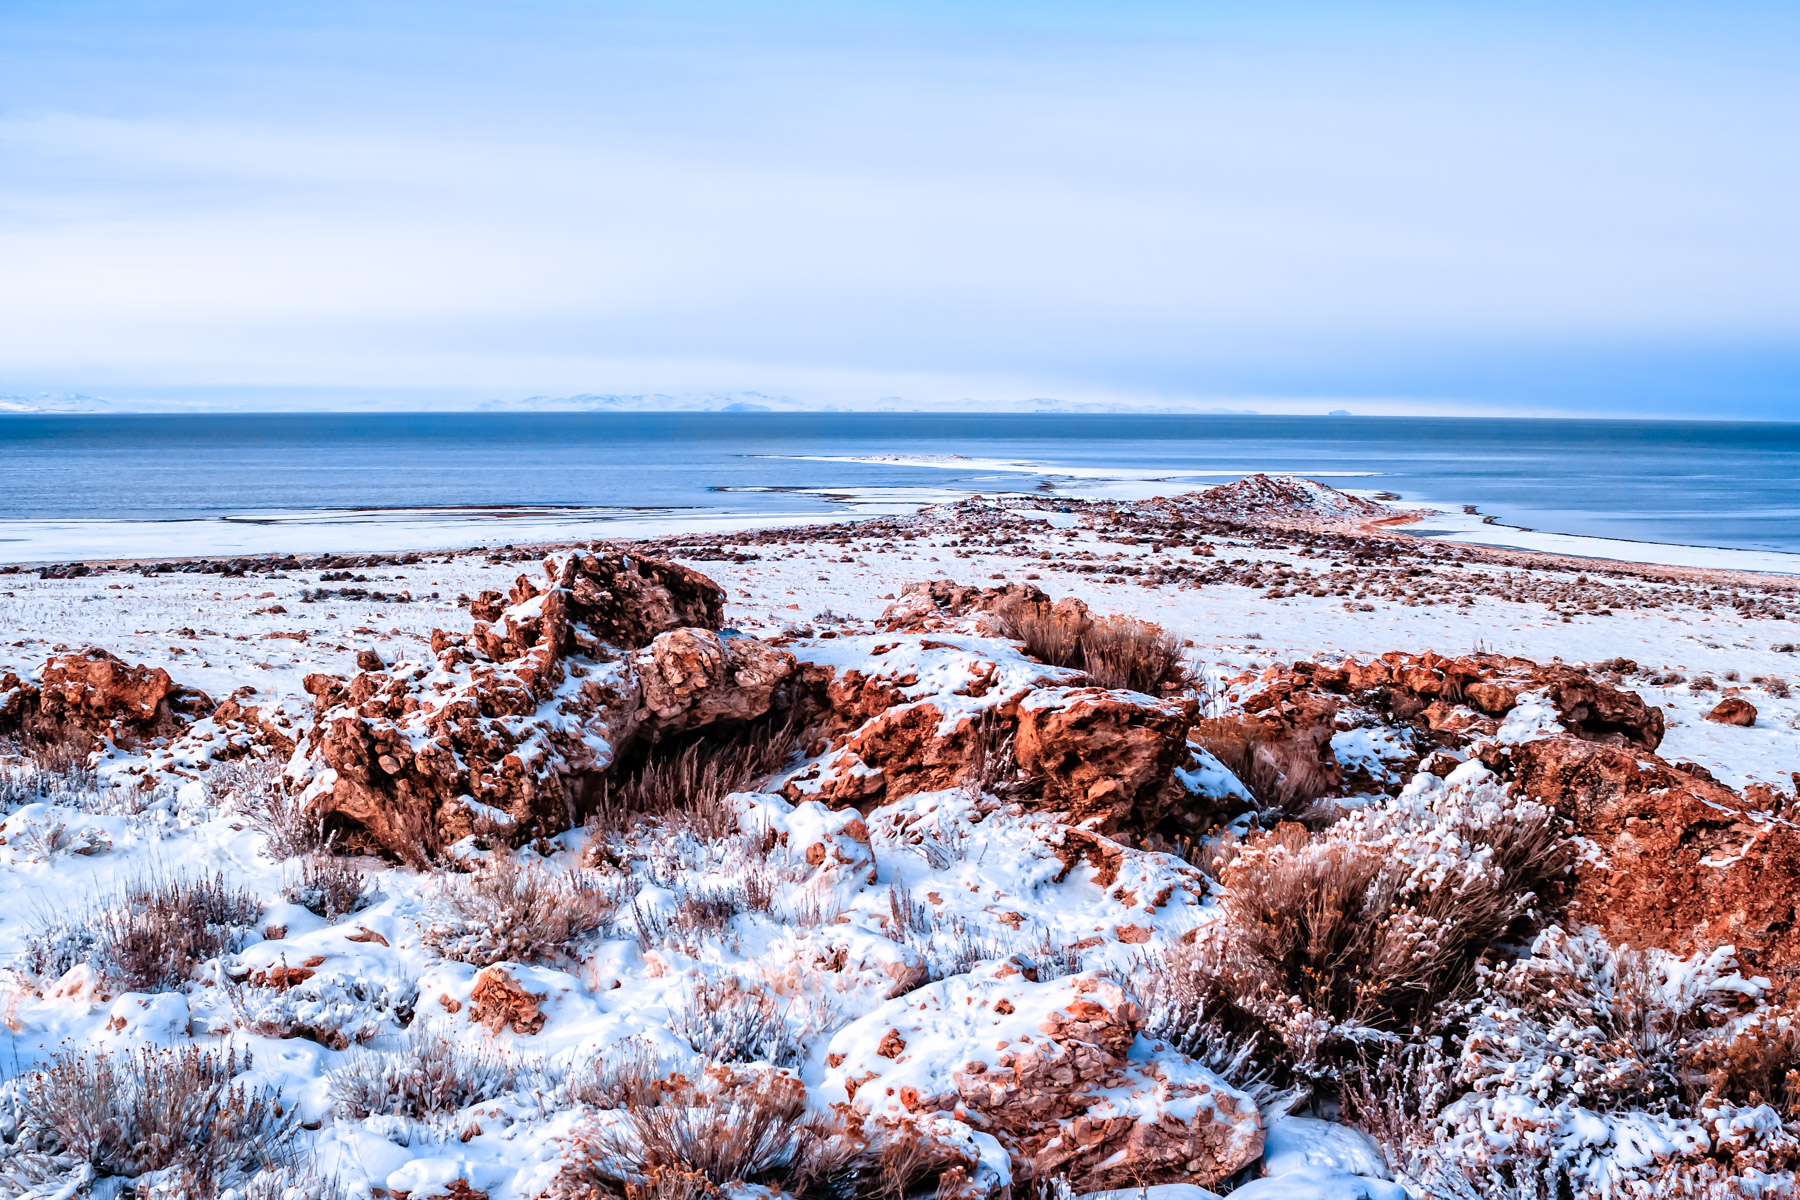 Rocks and brush protrude from the snow-covered landscape of the Great Salt Lake's Antelope Island in Utah.